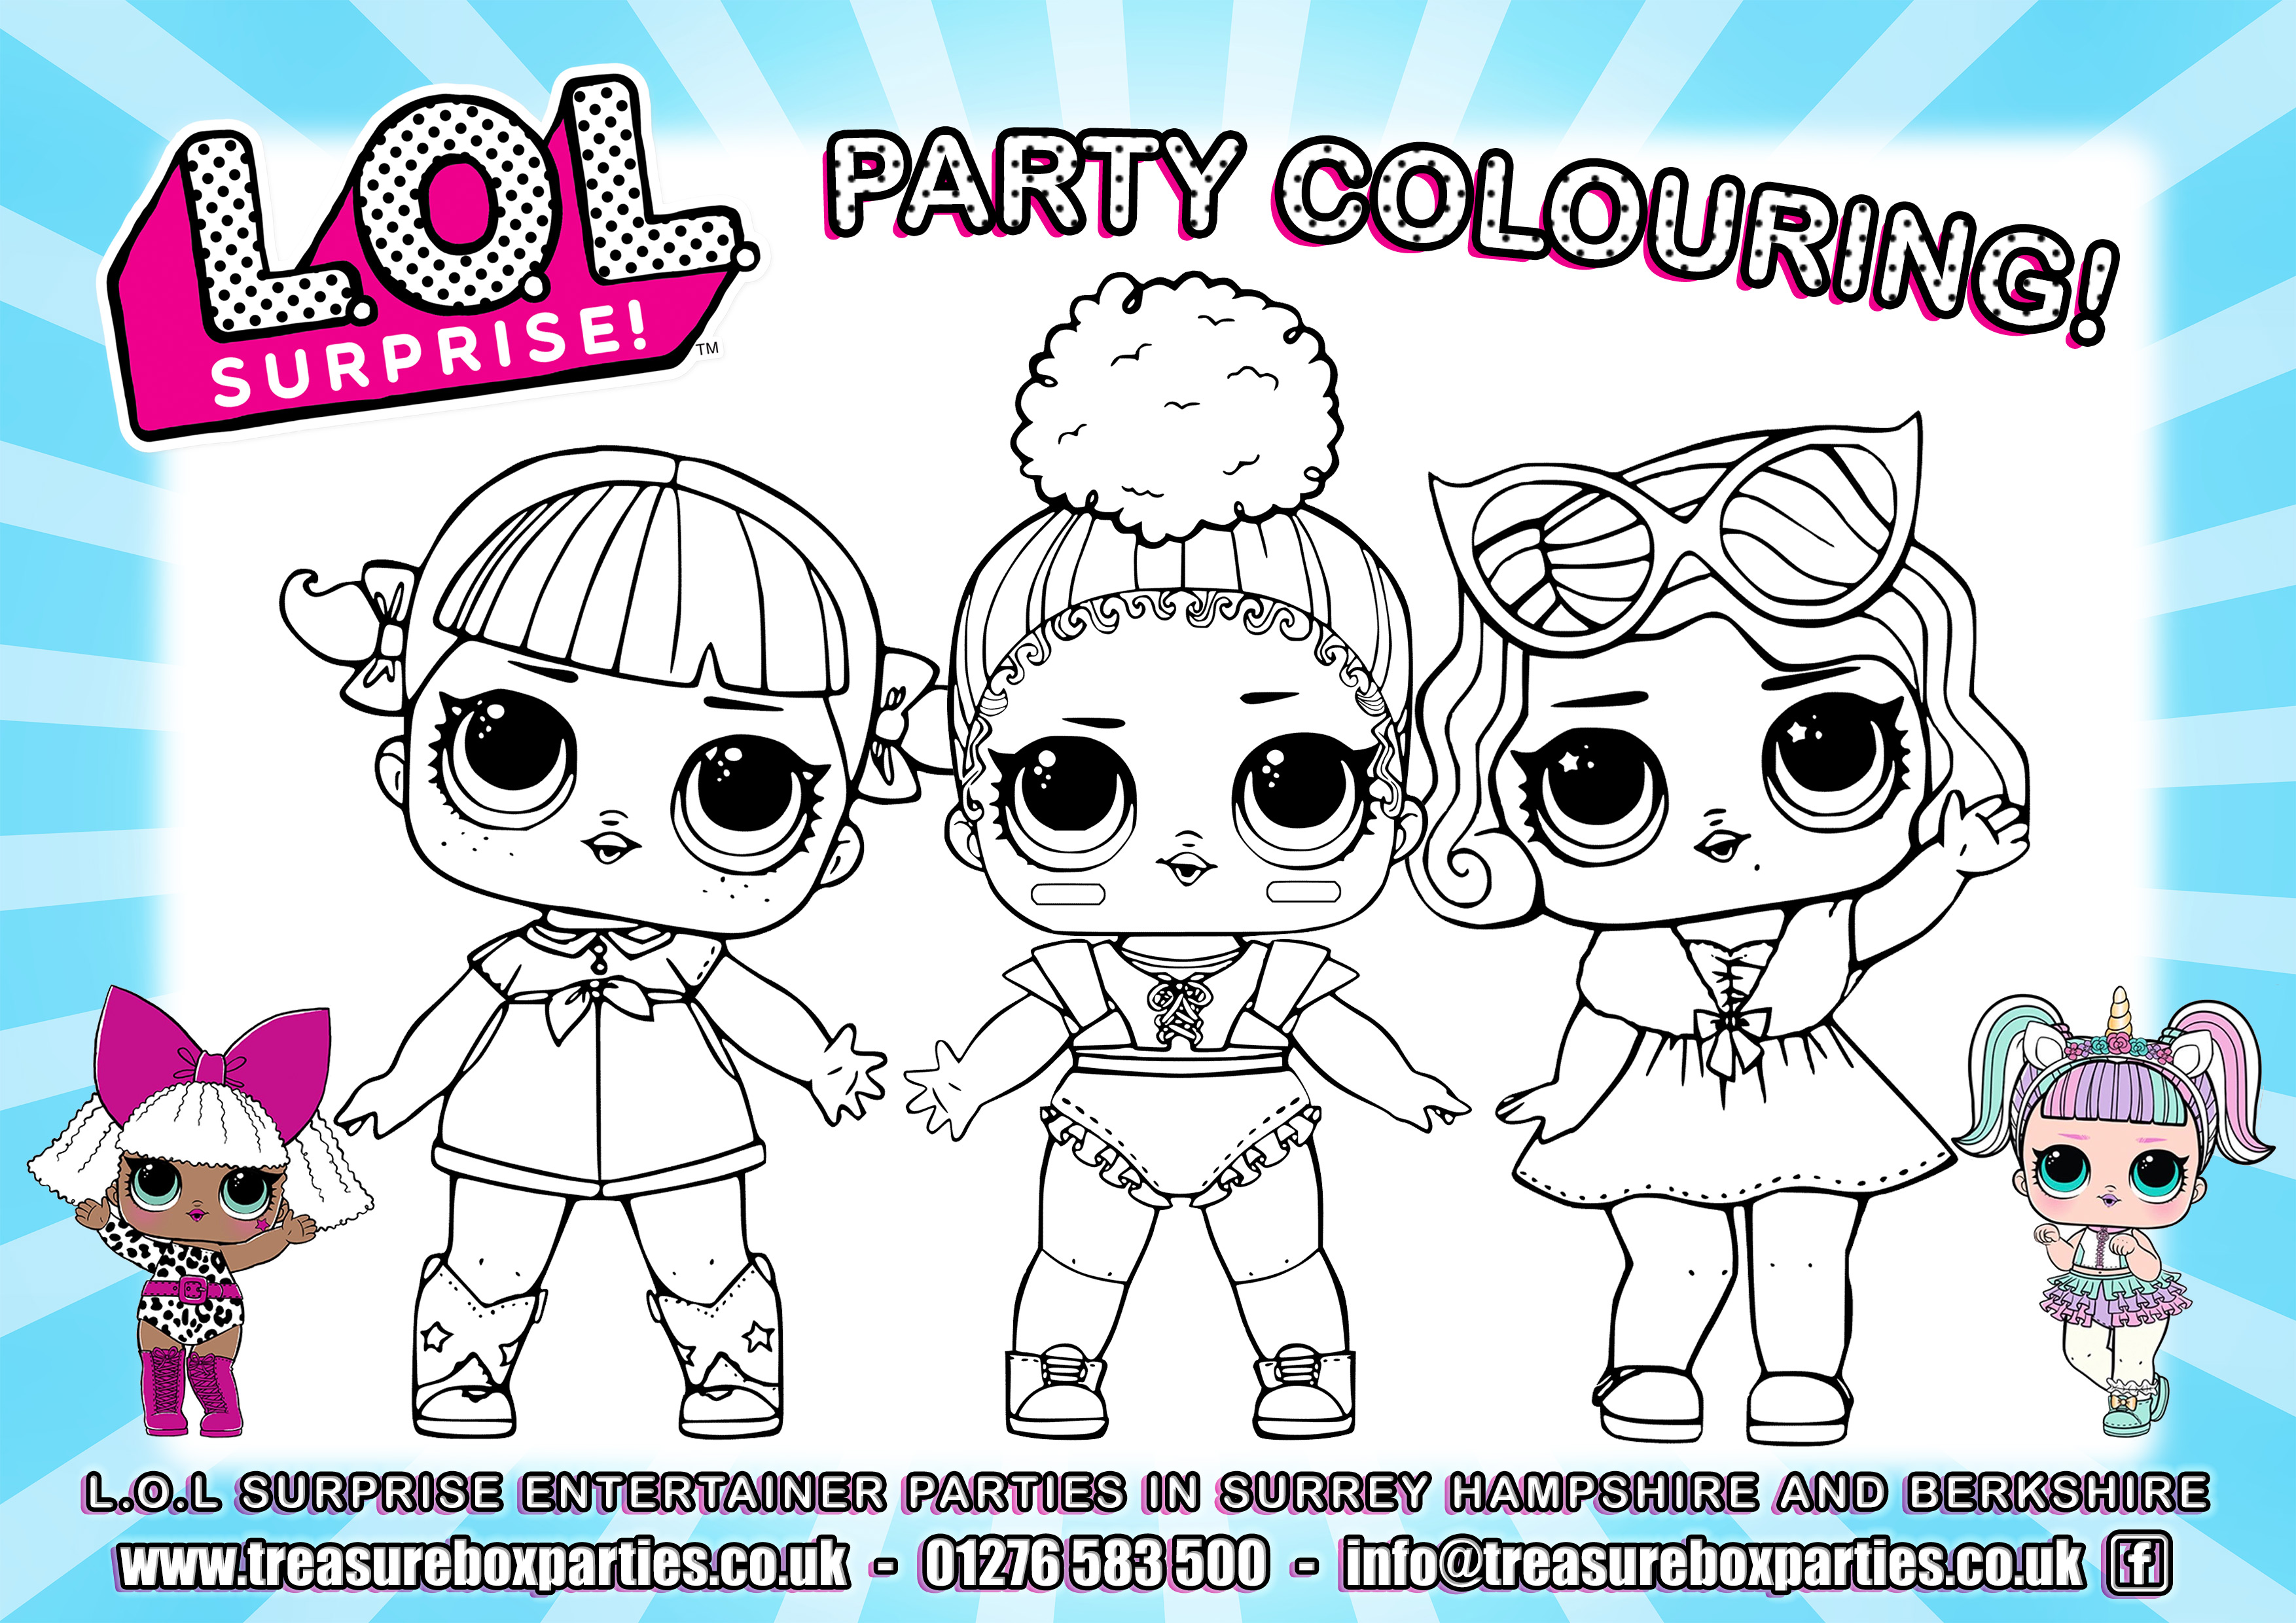 LOL Party Downloads - Childrens Entertainer Parties Surrey